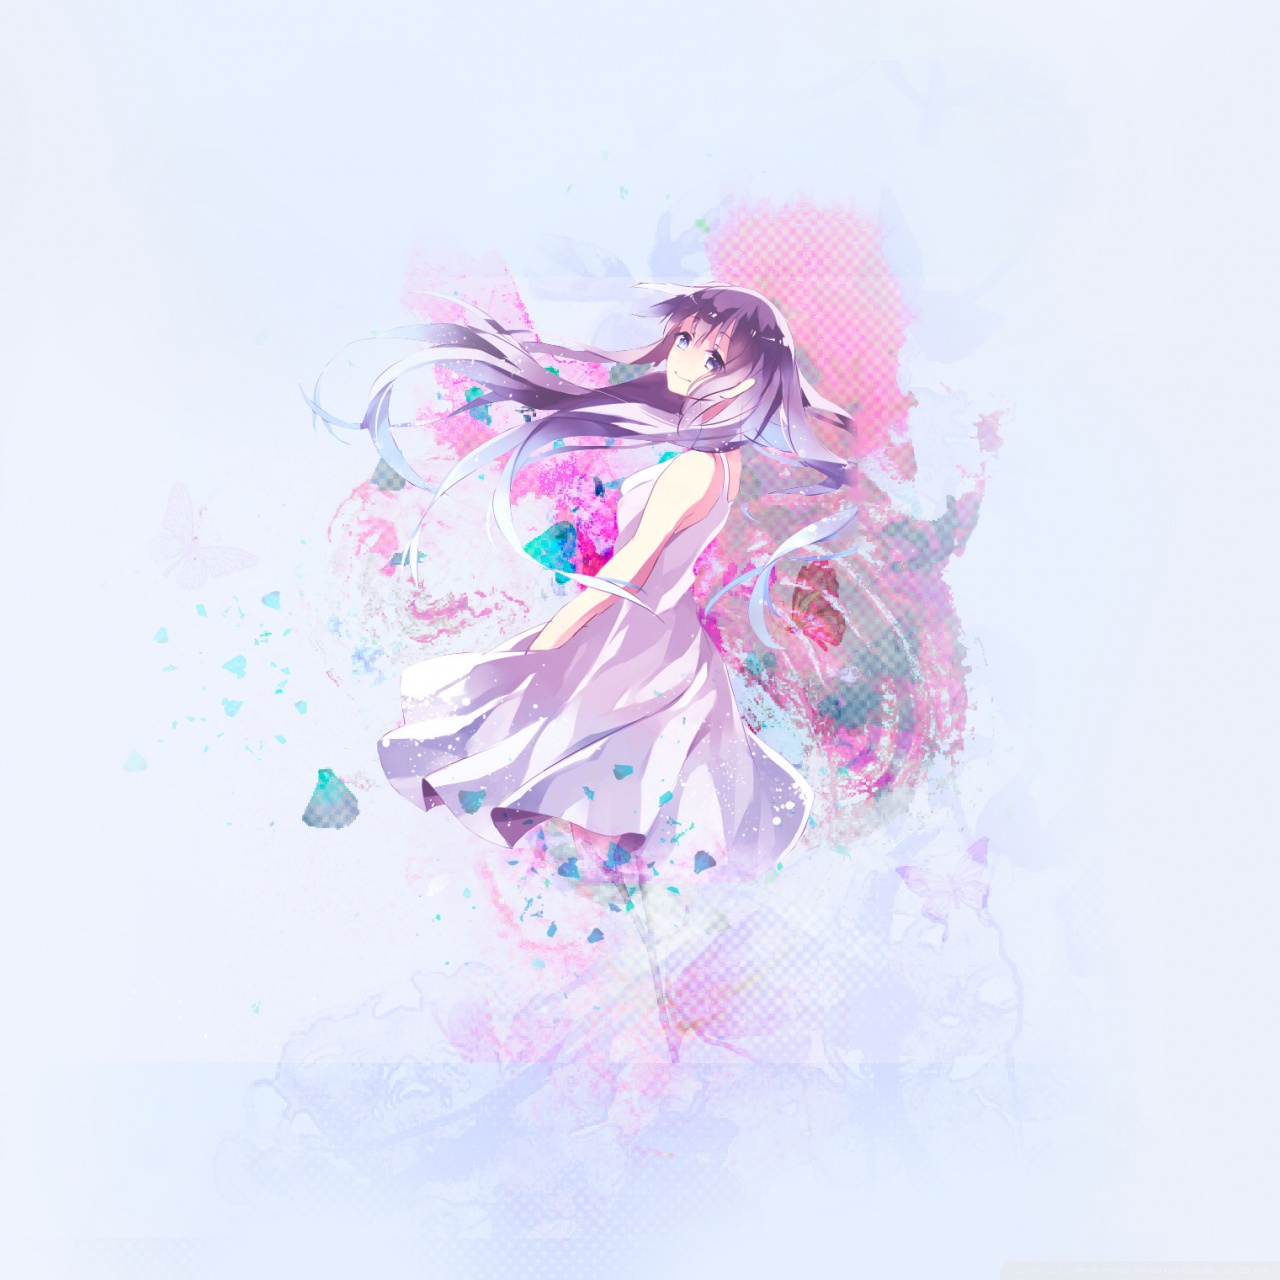 ibJohih anime wallpaper pastel aesthetic